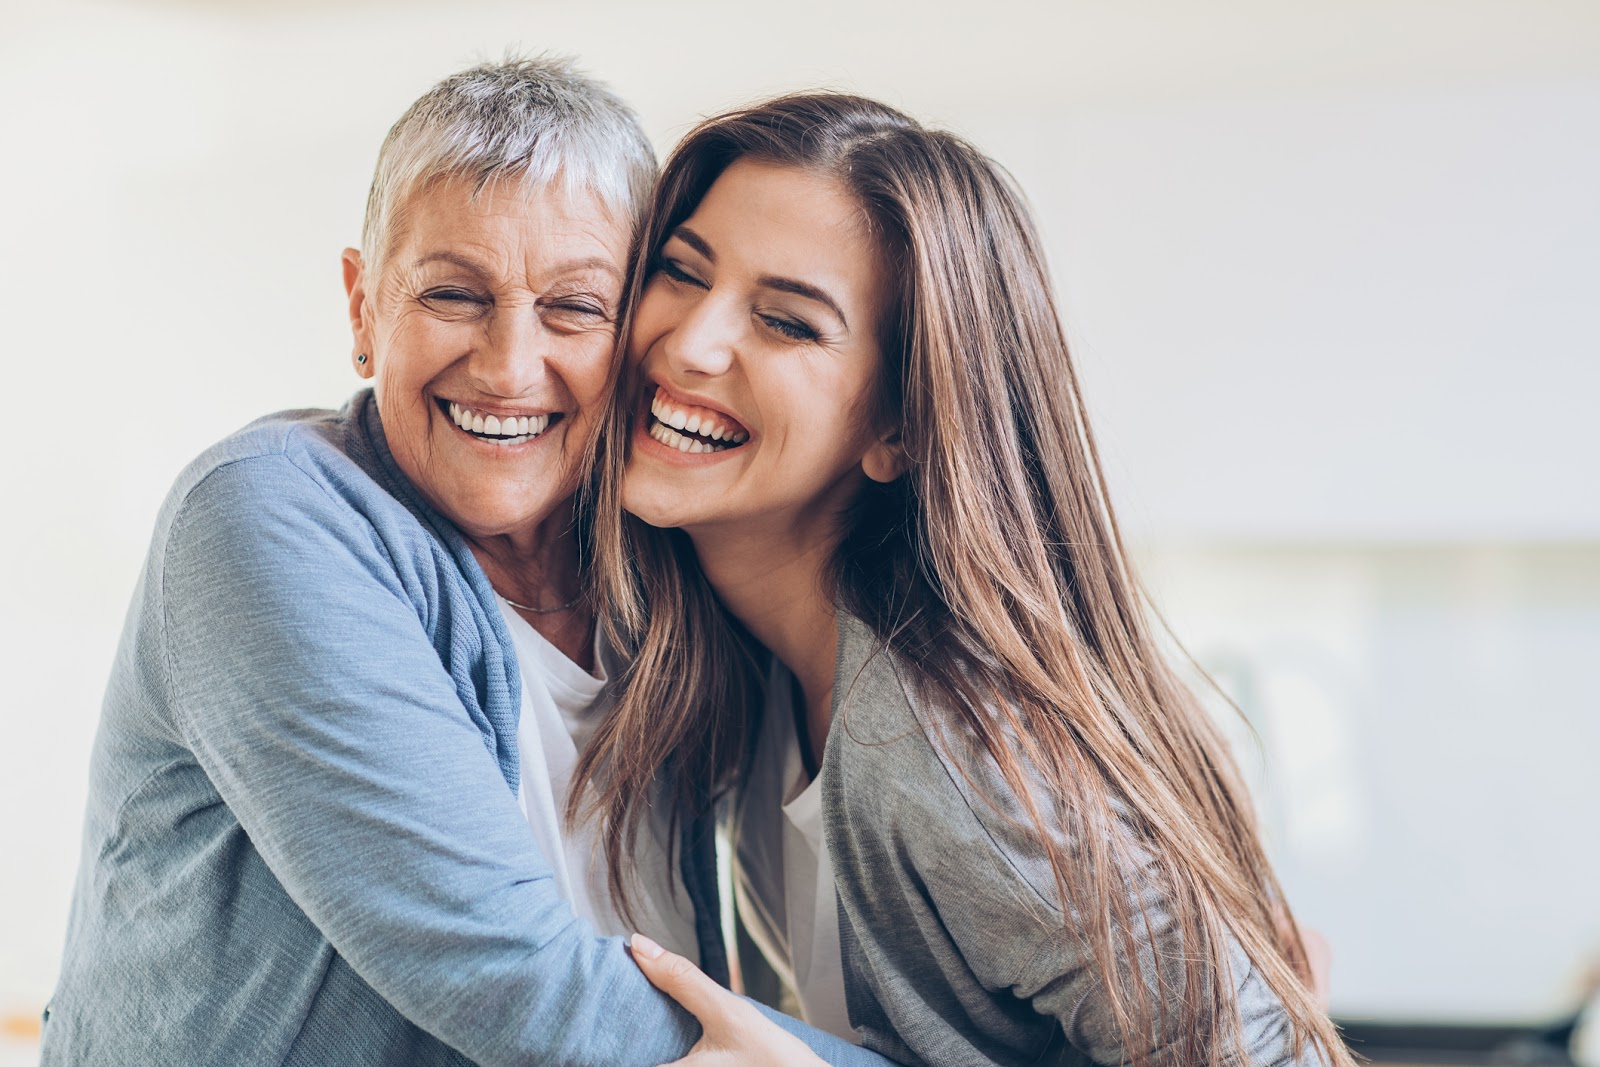 grandma and smiling young woman